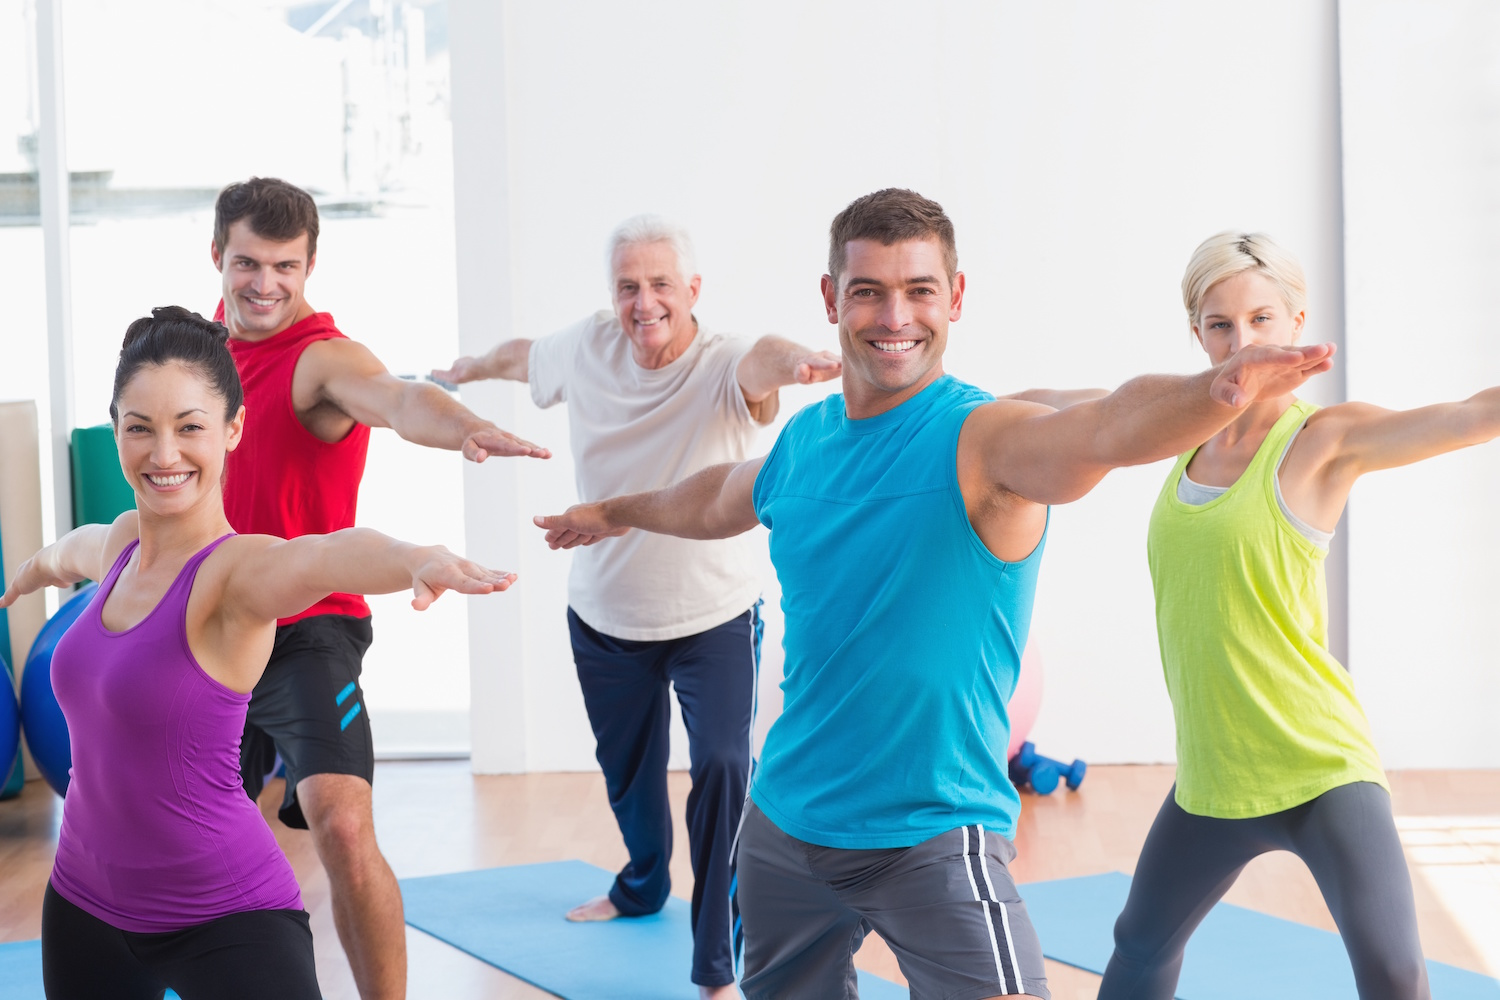 Yoga Class at Infinity Fitness in Falmouth, MA